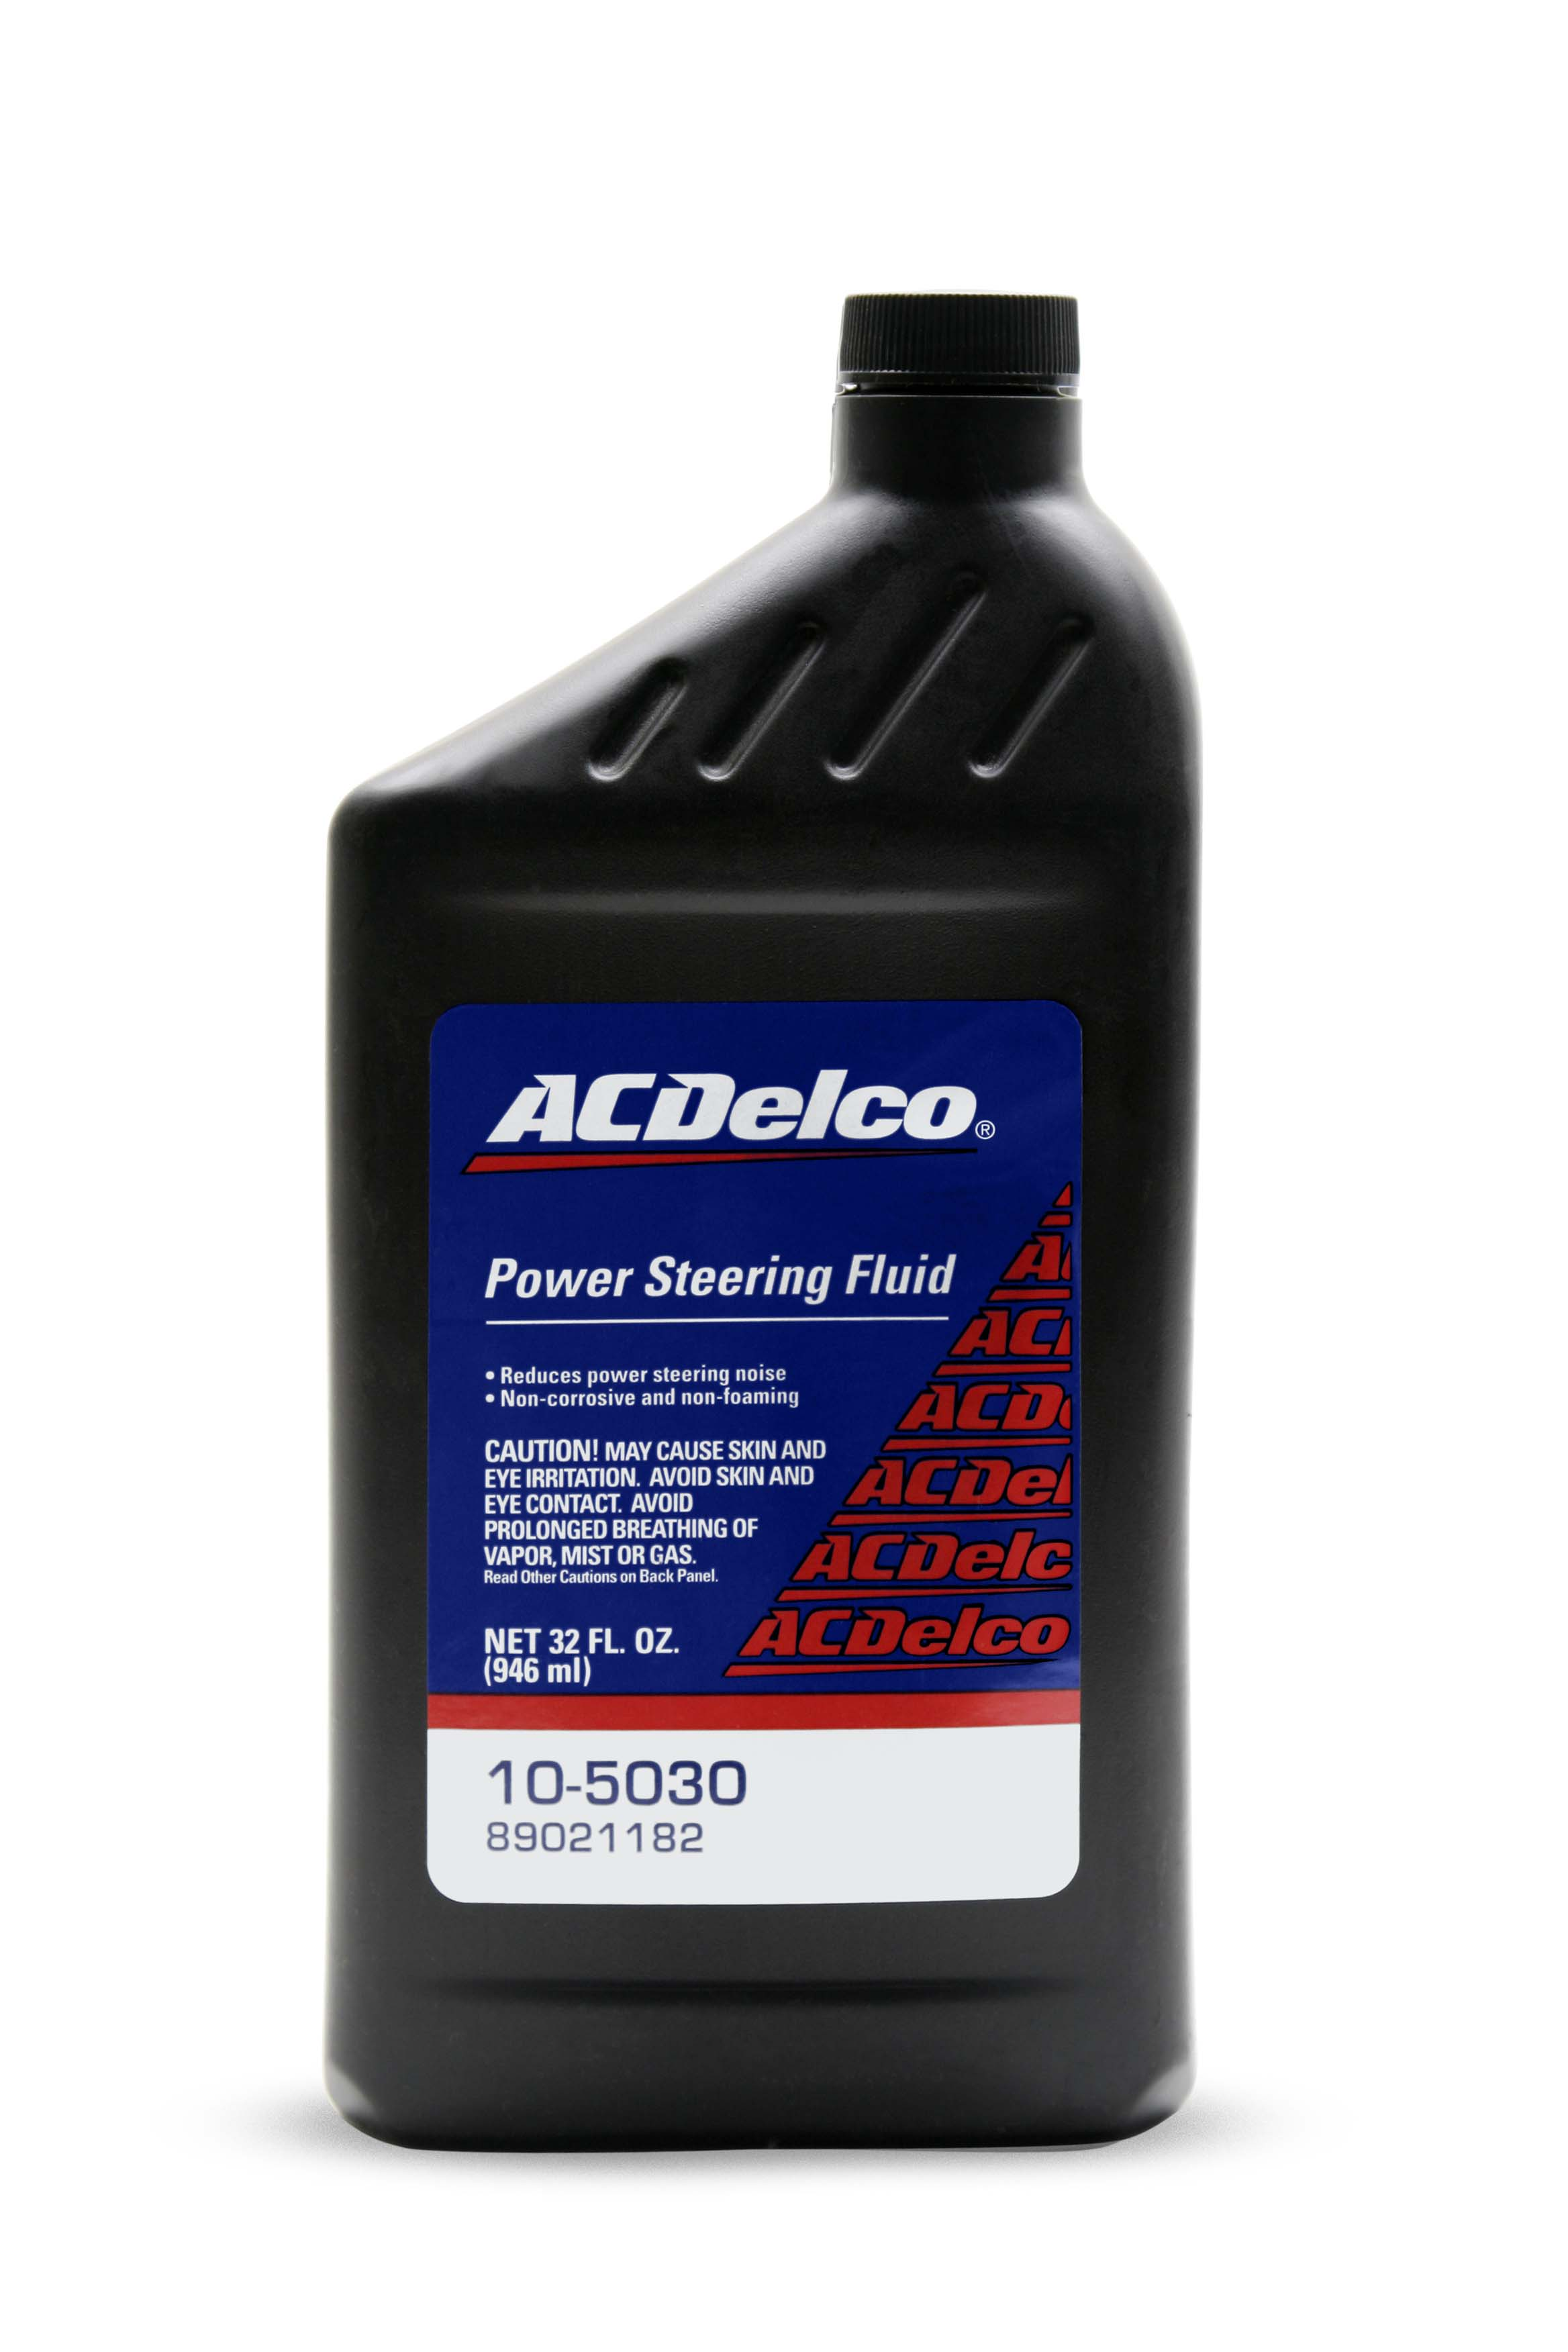 acdelco canada power steering fluid. Black Bedroom Furniture Sets. Home Design Ideas